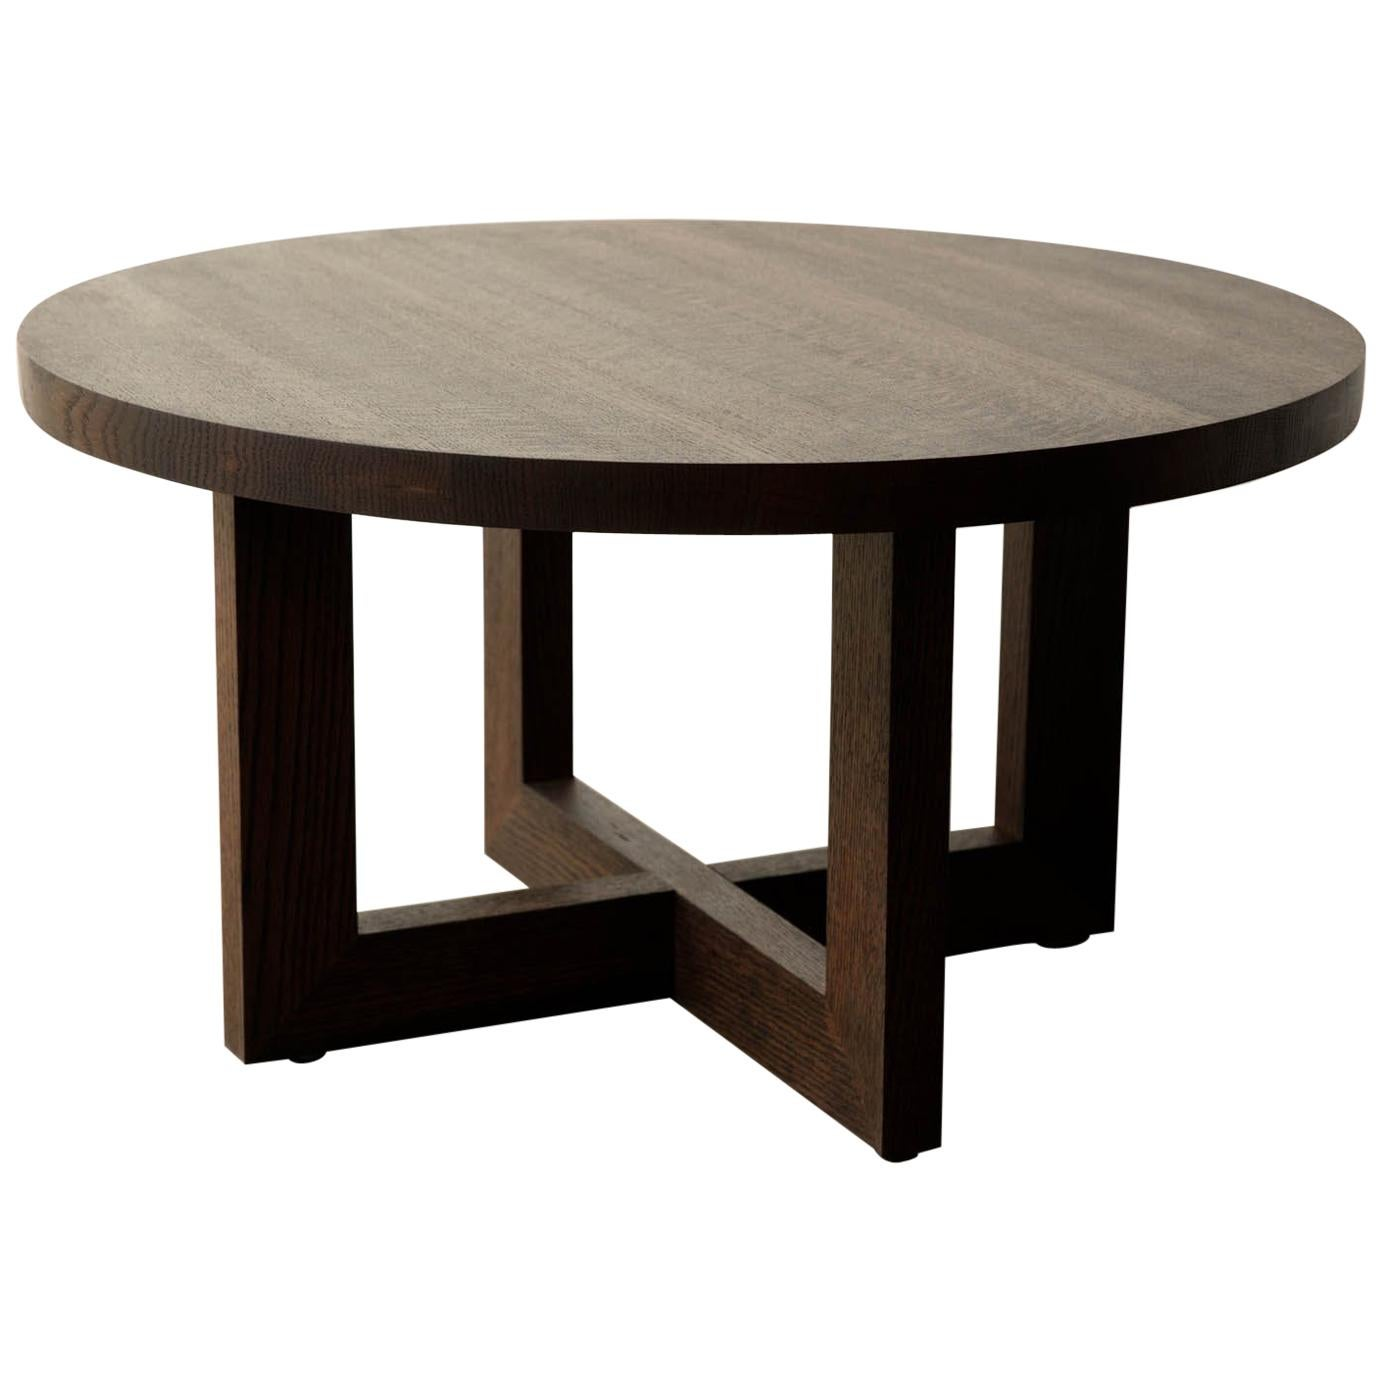 Round Wood Coffee Table in Dark Stained Urban Oak